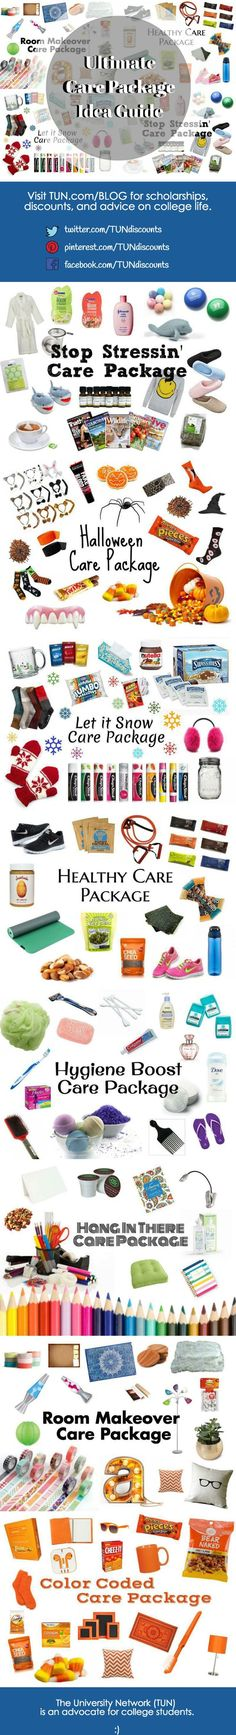 Whether youre giving a care package or receiving one, these simple boxes are a wonderful surprise for any college student. Show someone how much they mean to you with these 8 great care package ideas!